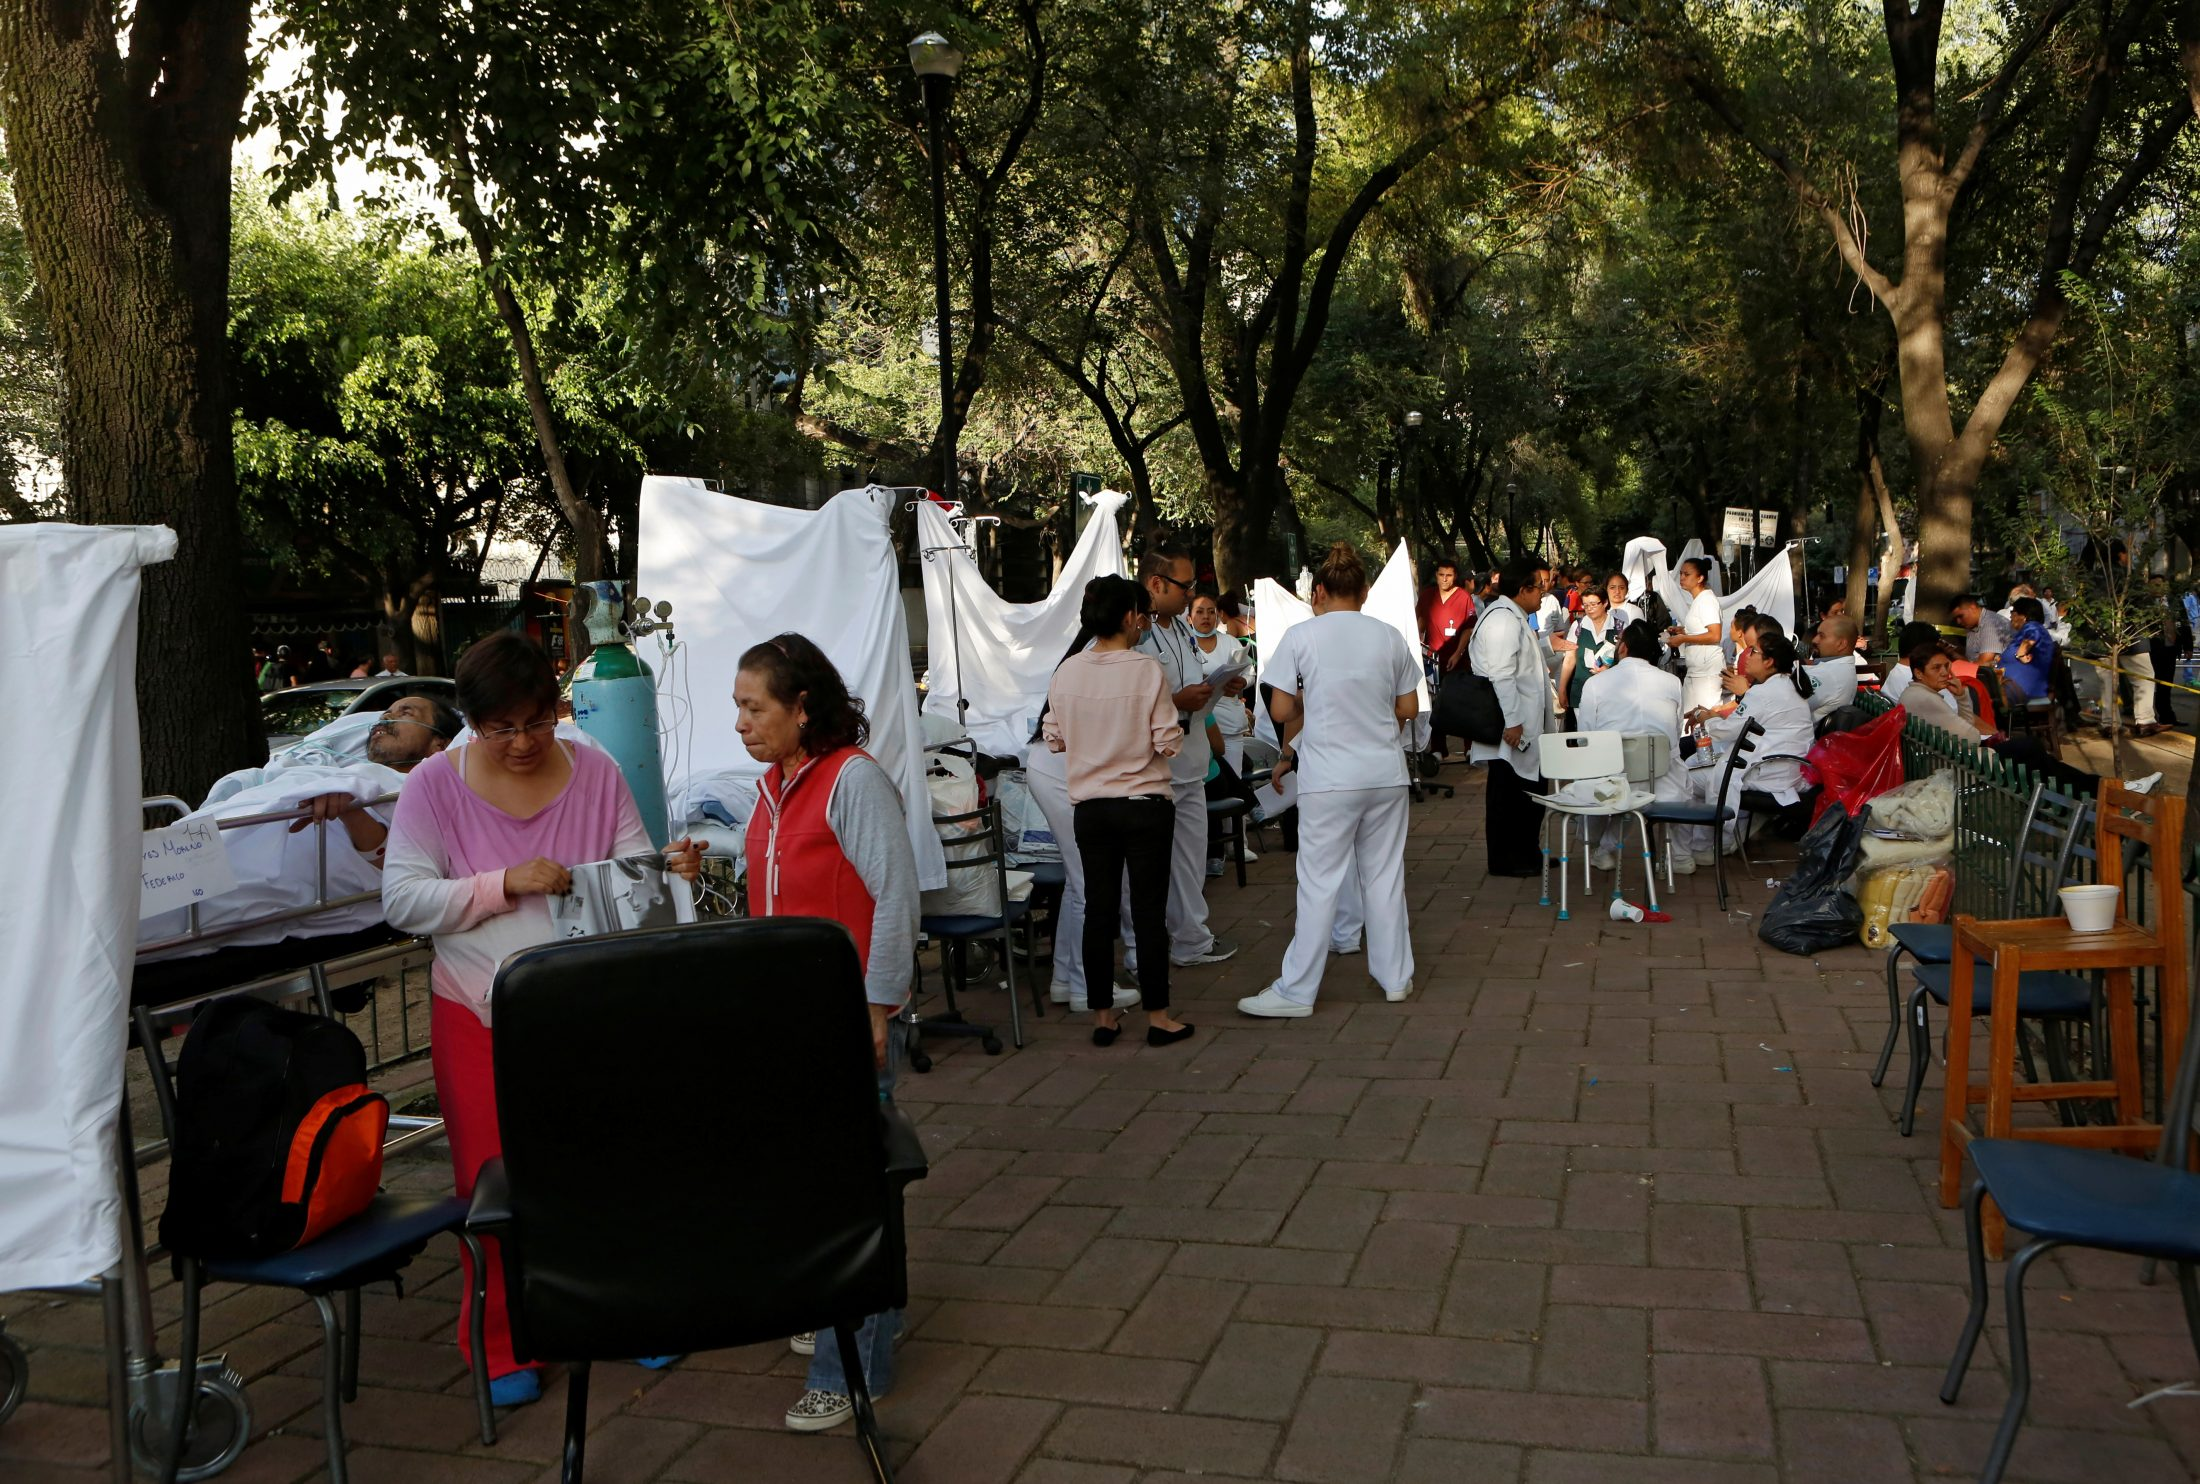 Medical stations are set up in the streets to treat those injured from the earthquake. Photo by Ginnette Riquelme/Reuters